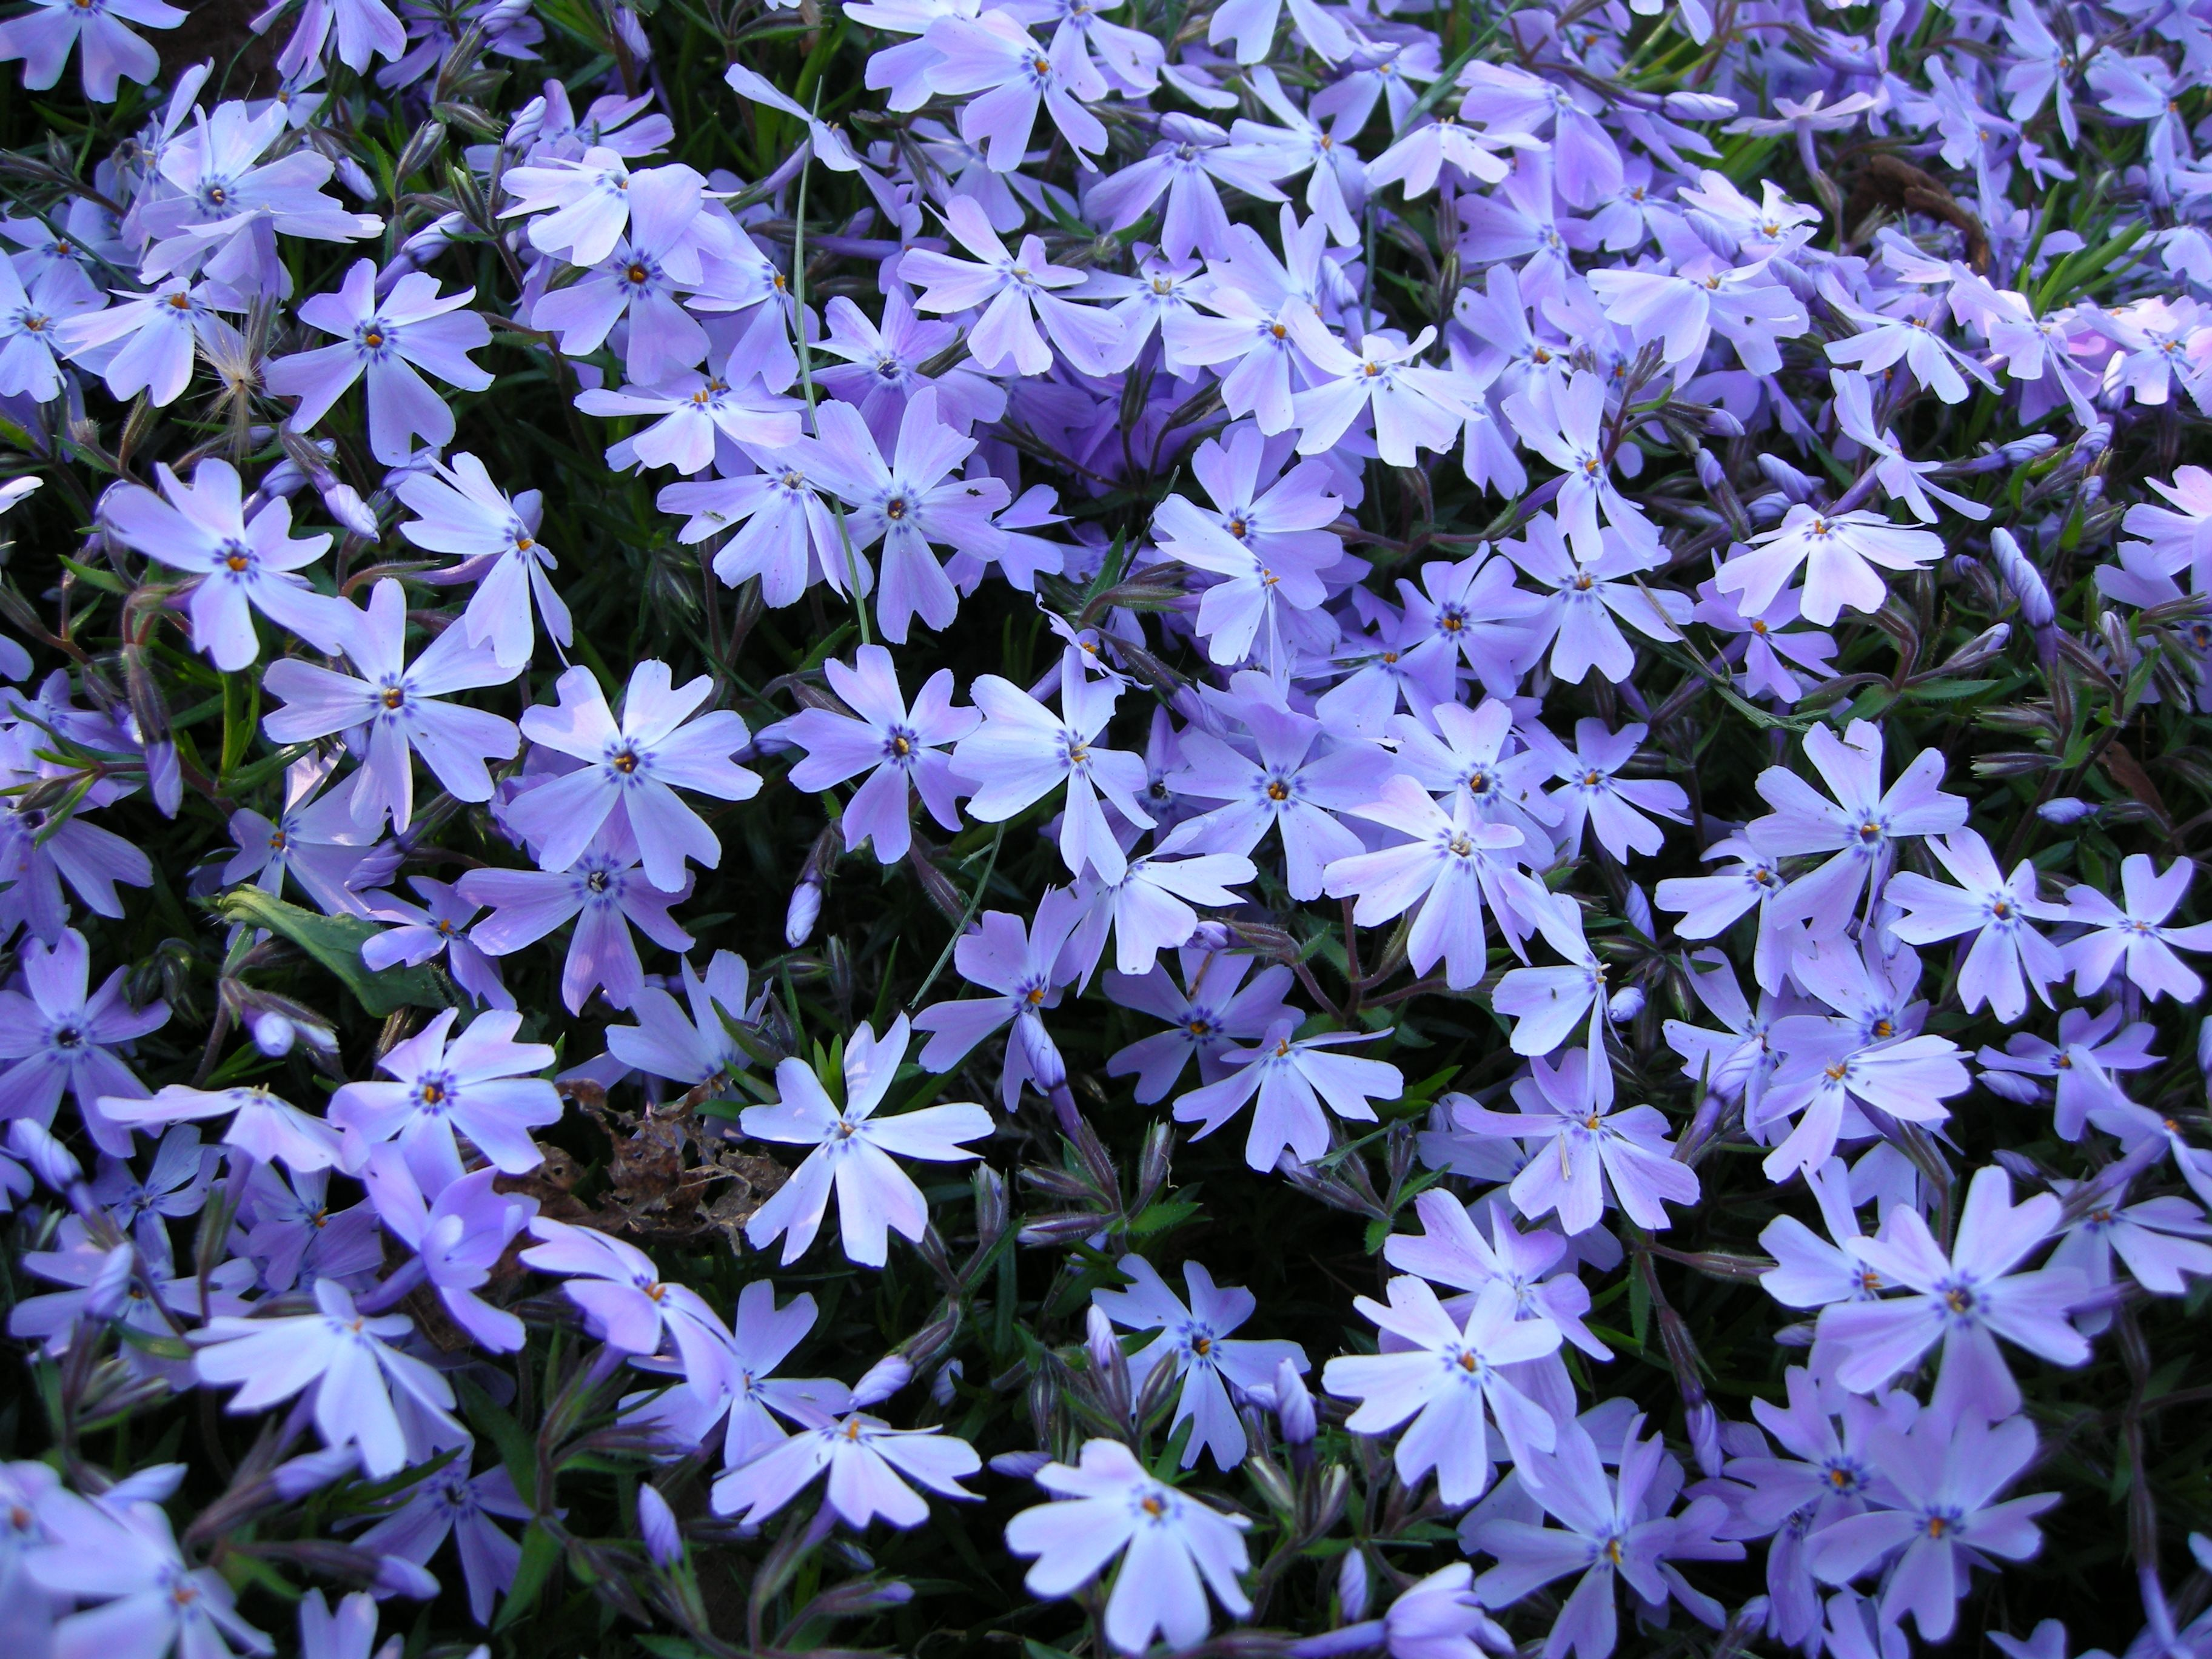 Emerald blue phlox i wish i had planted more of this last year it blue creeping phlox phlox subulata emerald blue this is what my daughter in law megan welsh is planting in her yard she received this plant by mail on izmirmasajfo